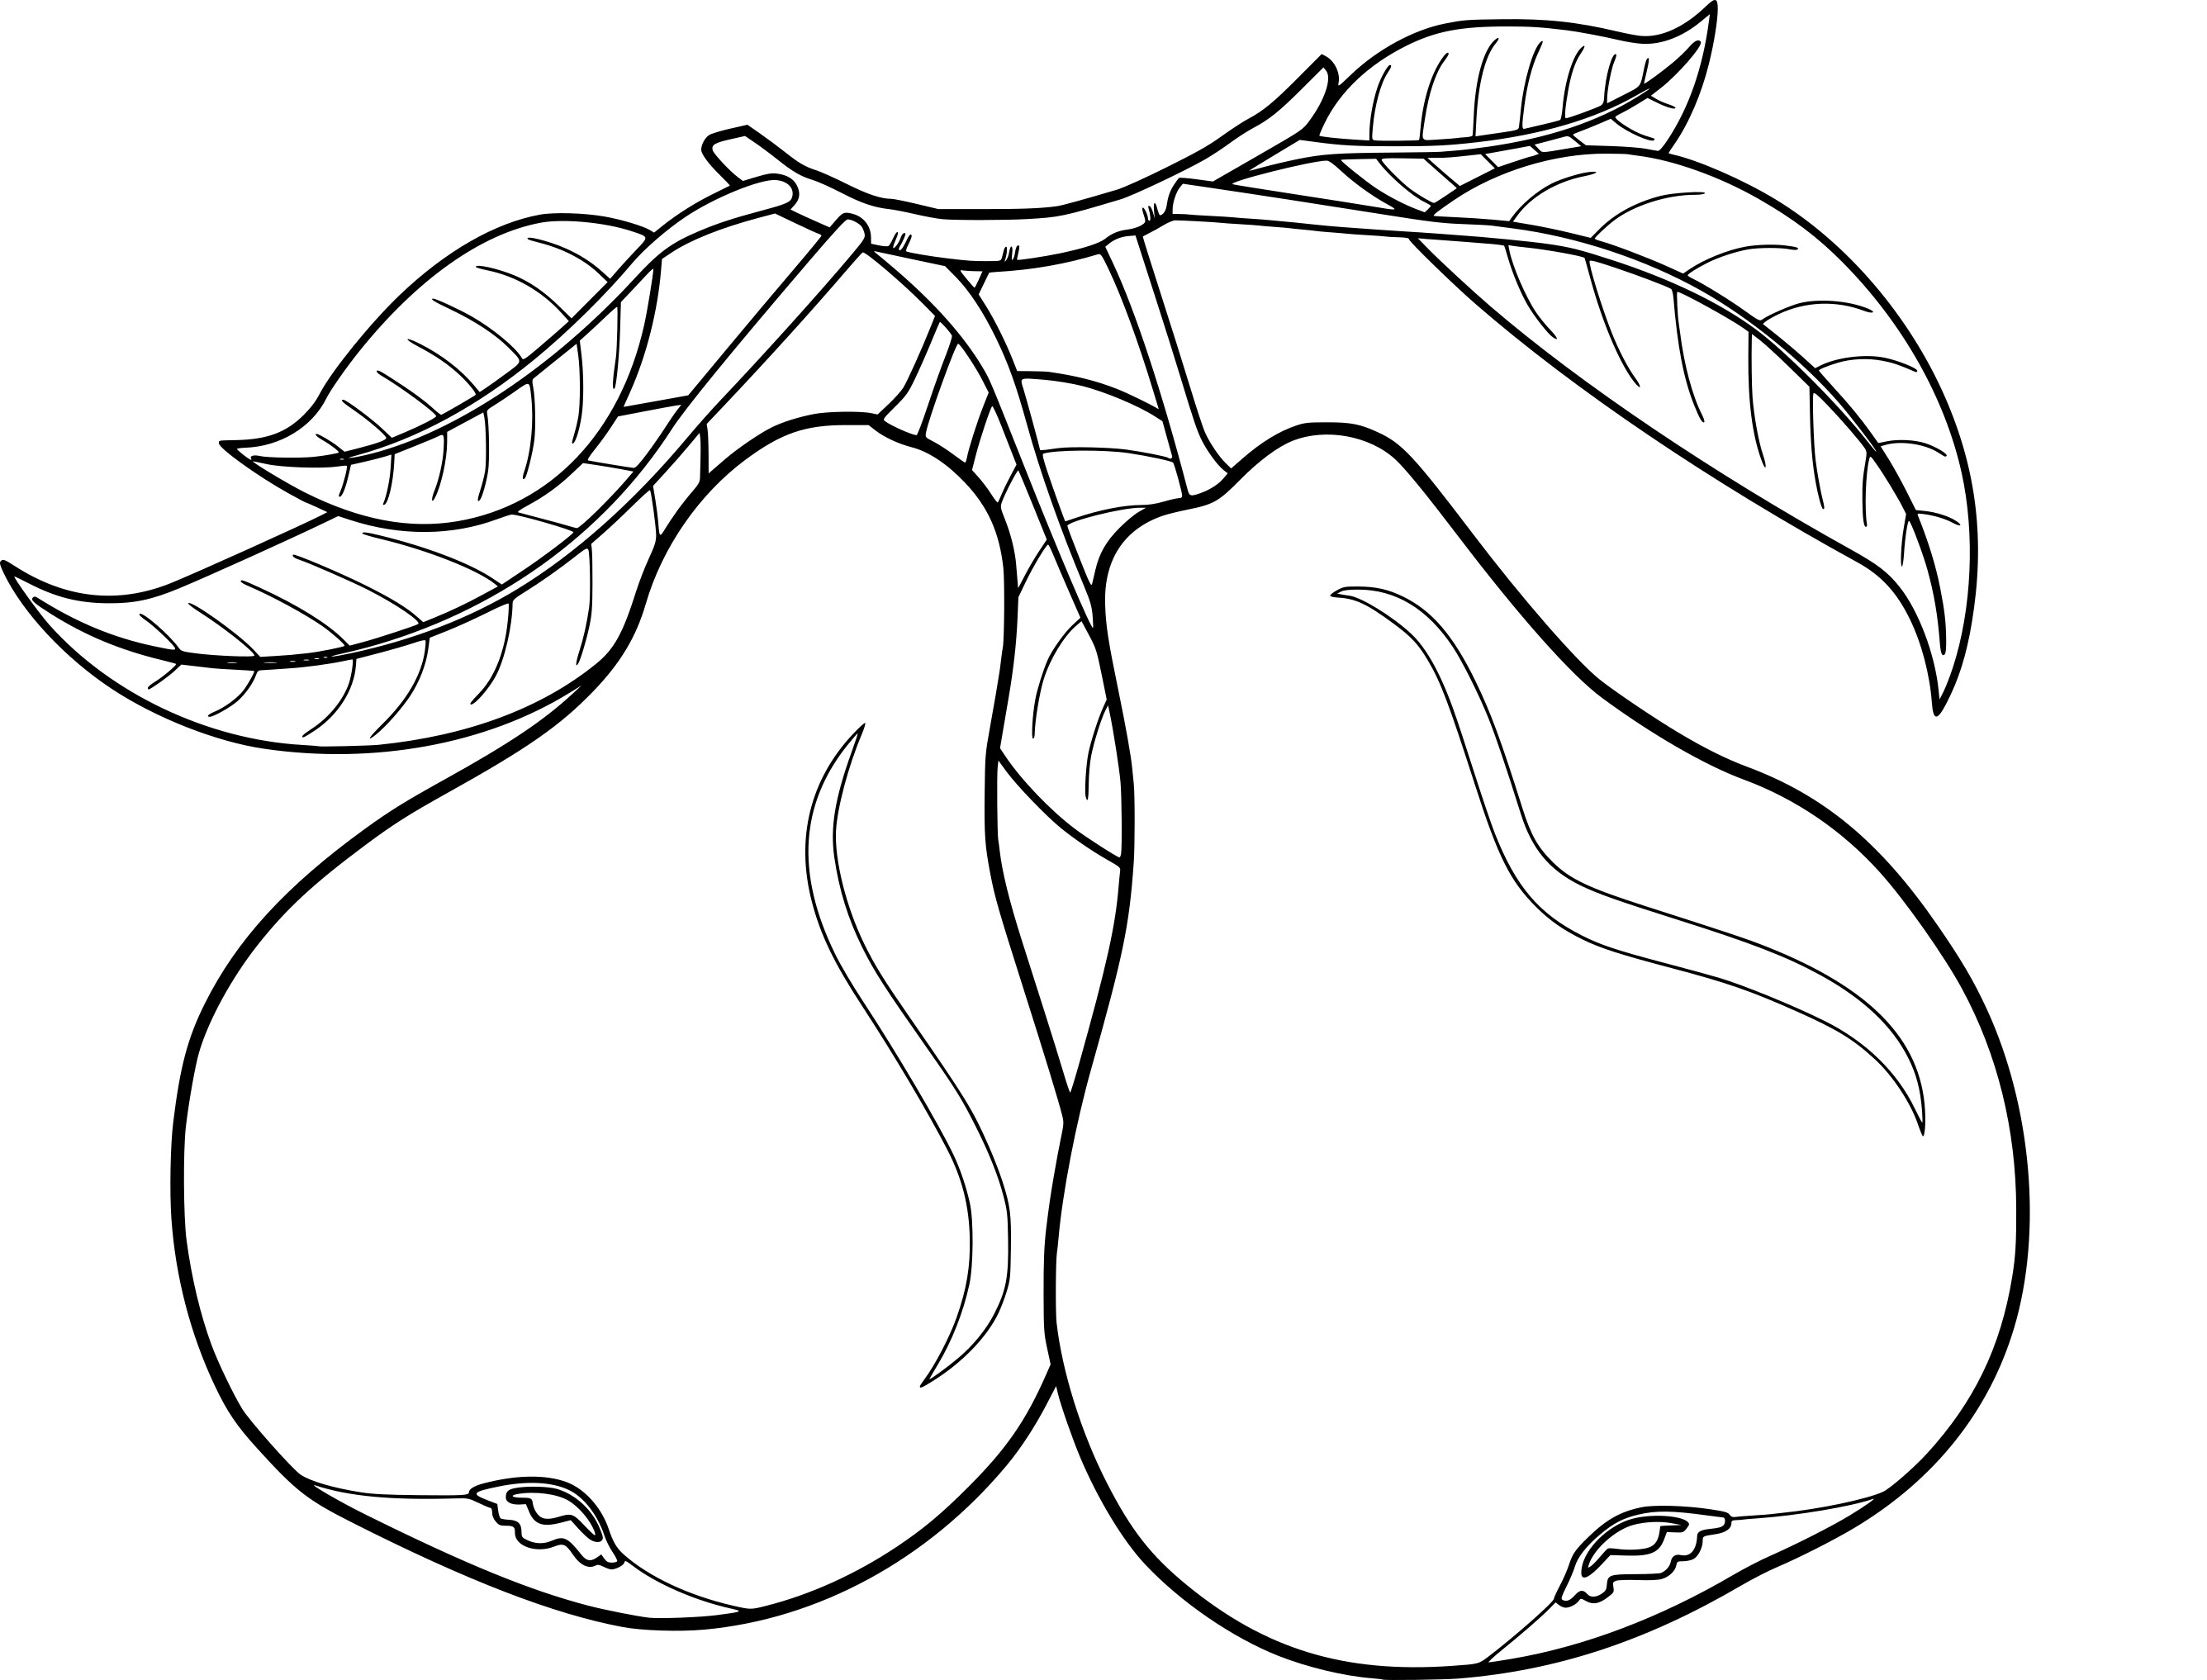 2672x2034 Pears Coloring Page